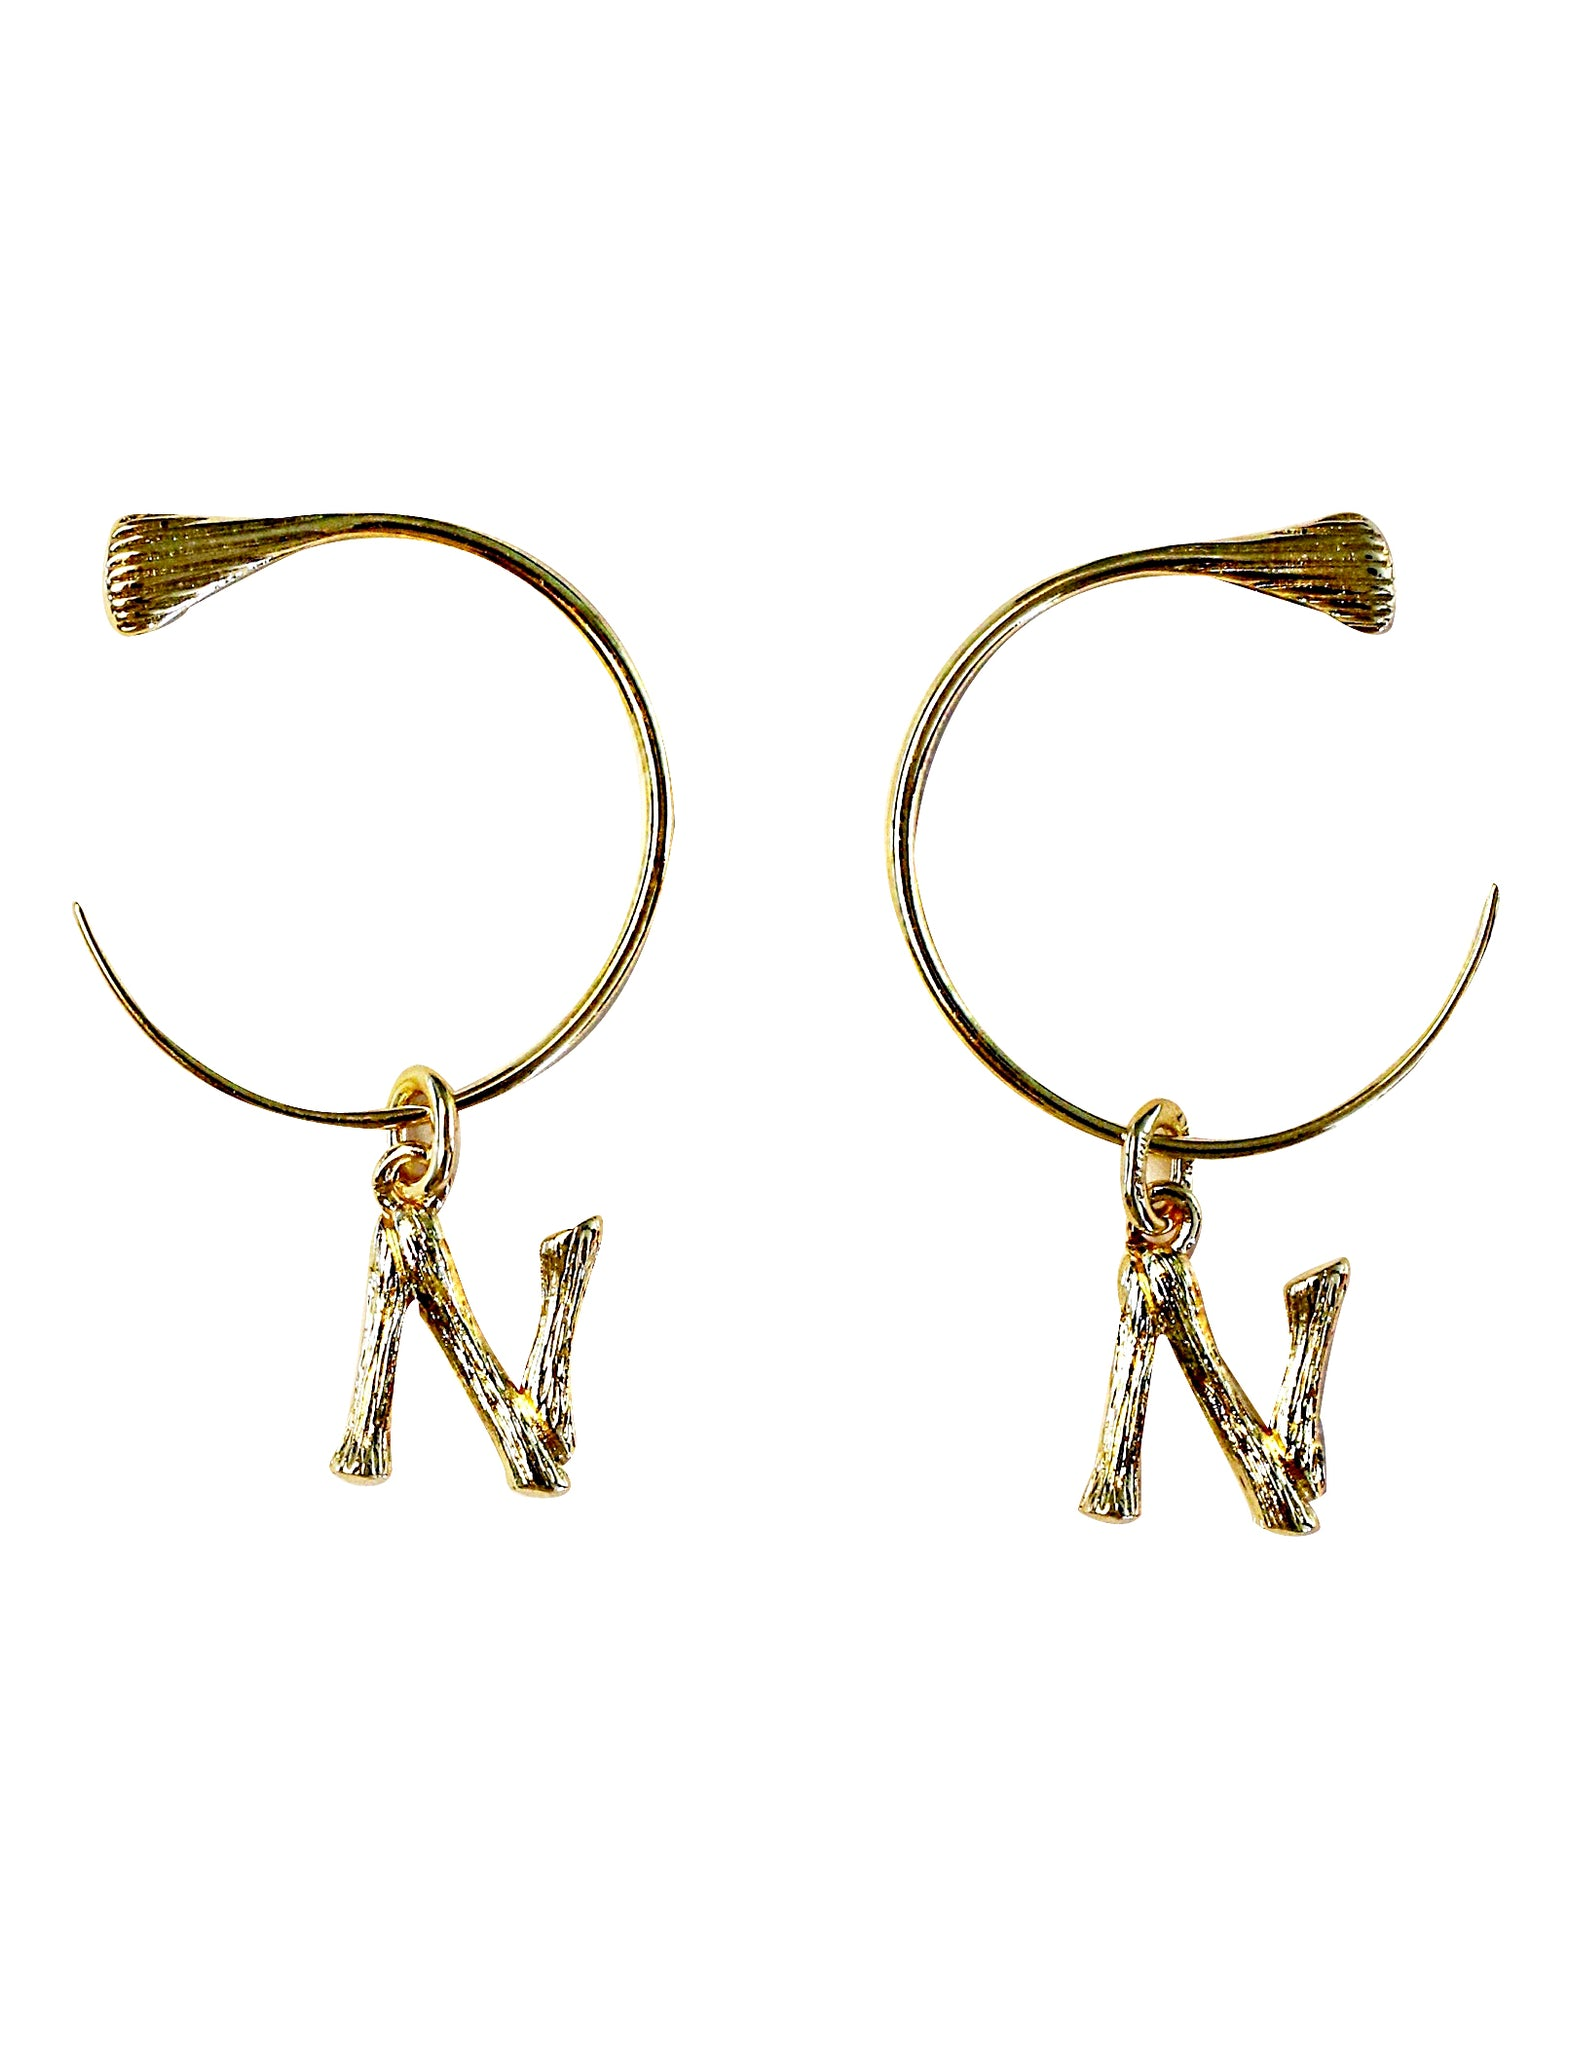 N-Initial earrings